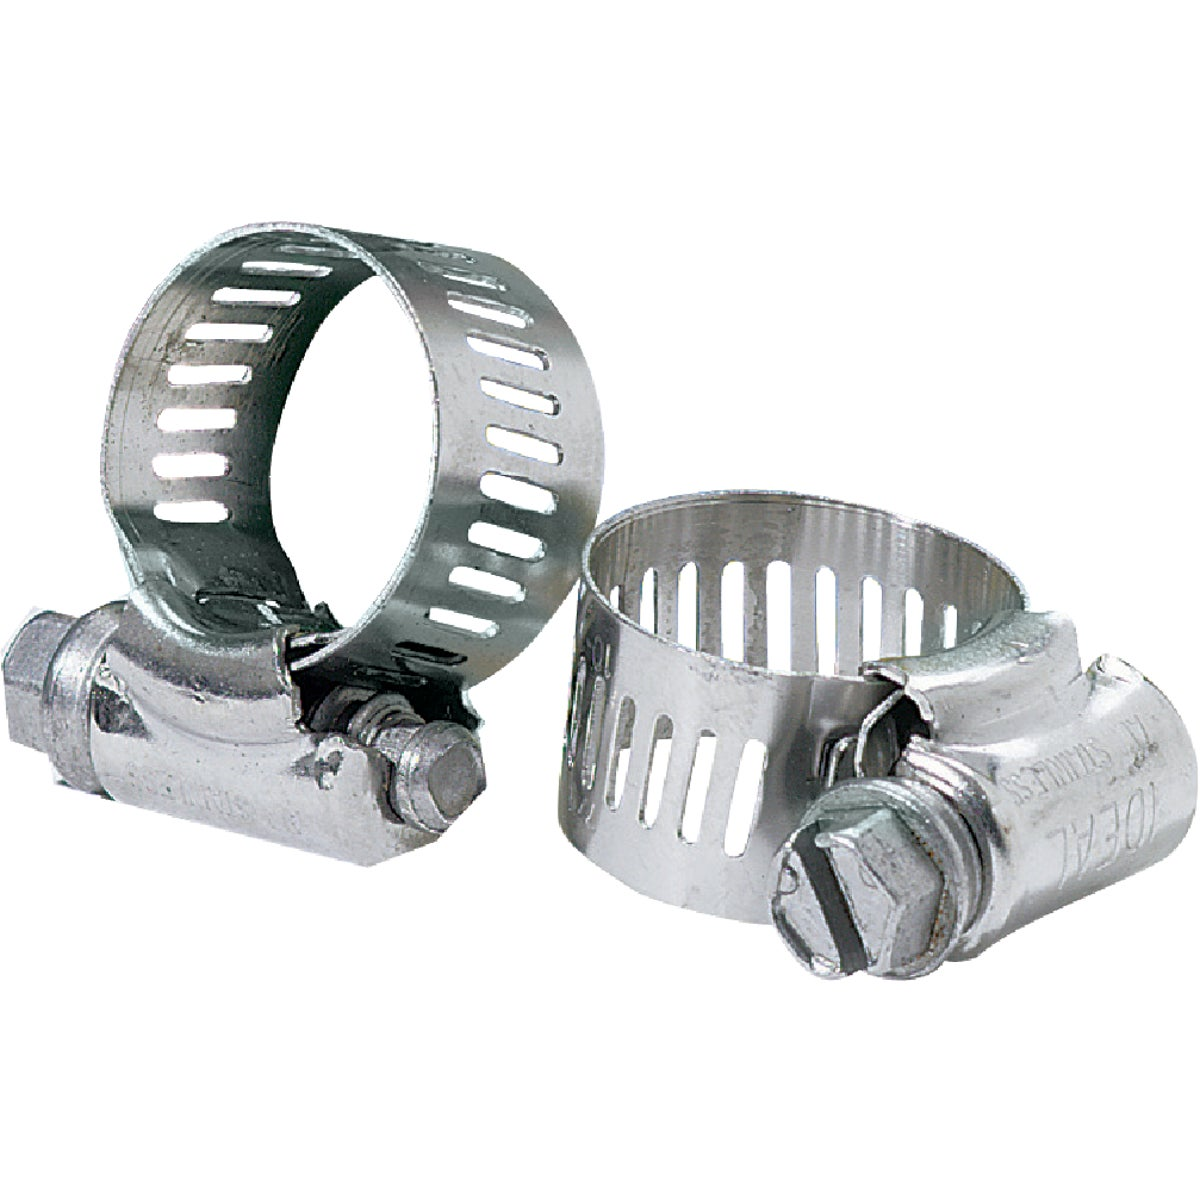 "1-1/4"" - 2-1/4"" CLAMP - 6728553 by Ideal Corp"